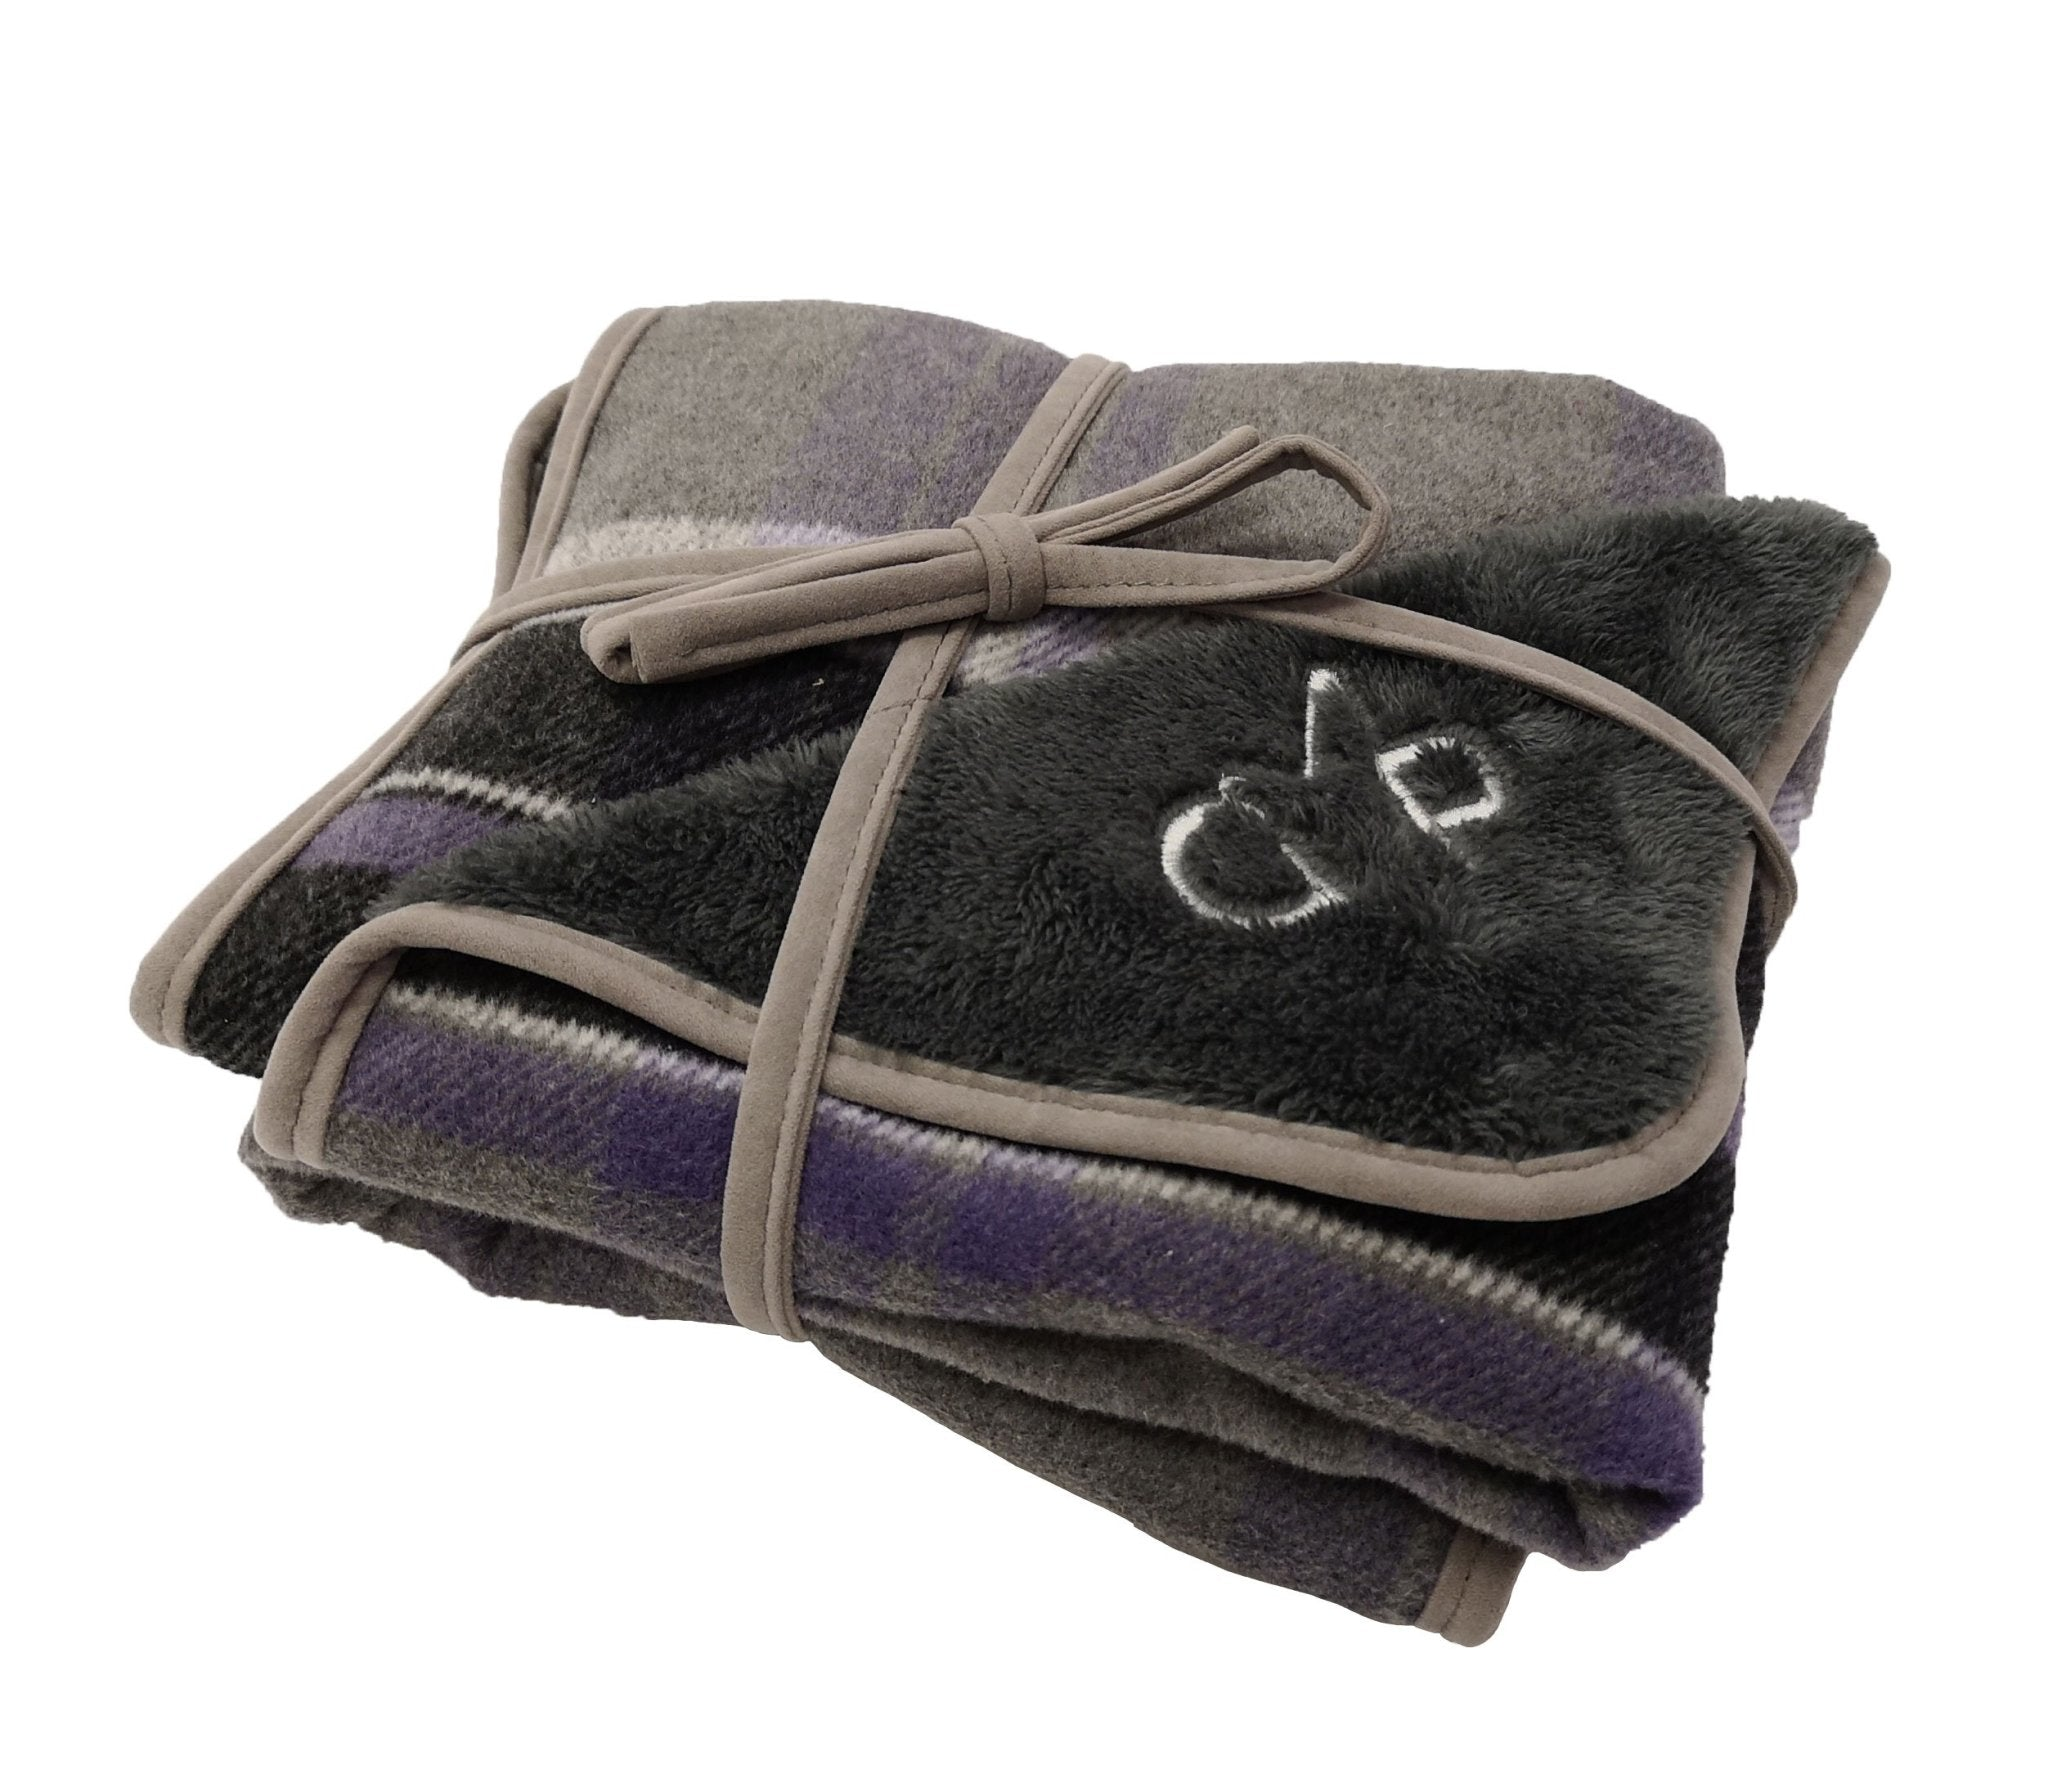 Camden Blanket - Pampered Paws.shop